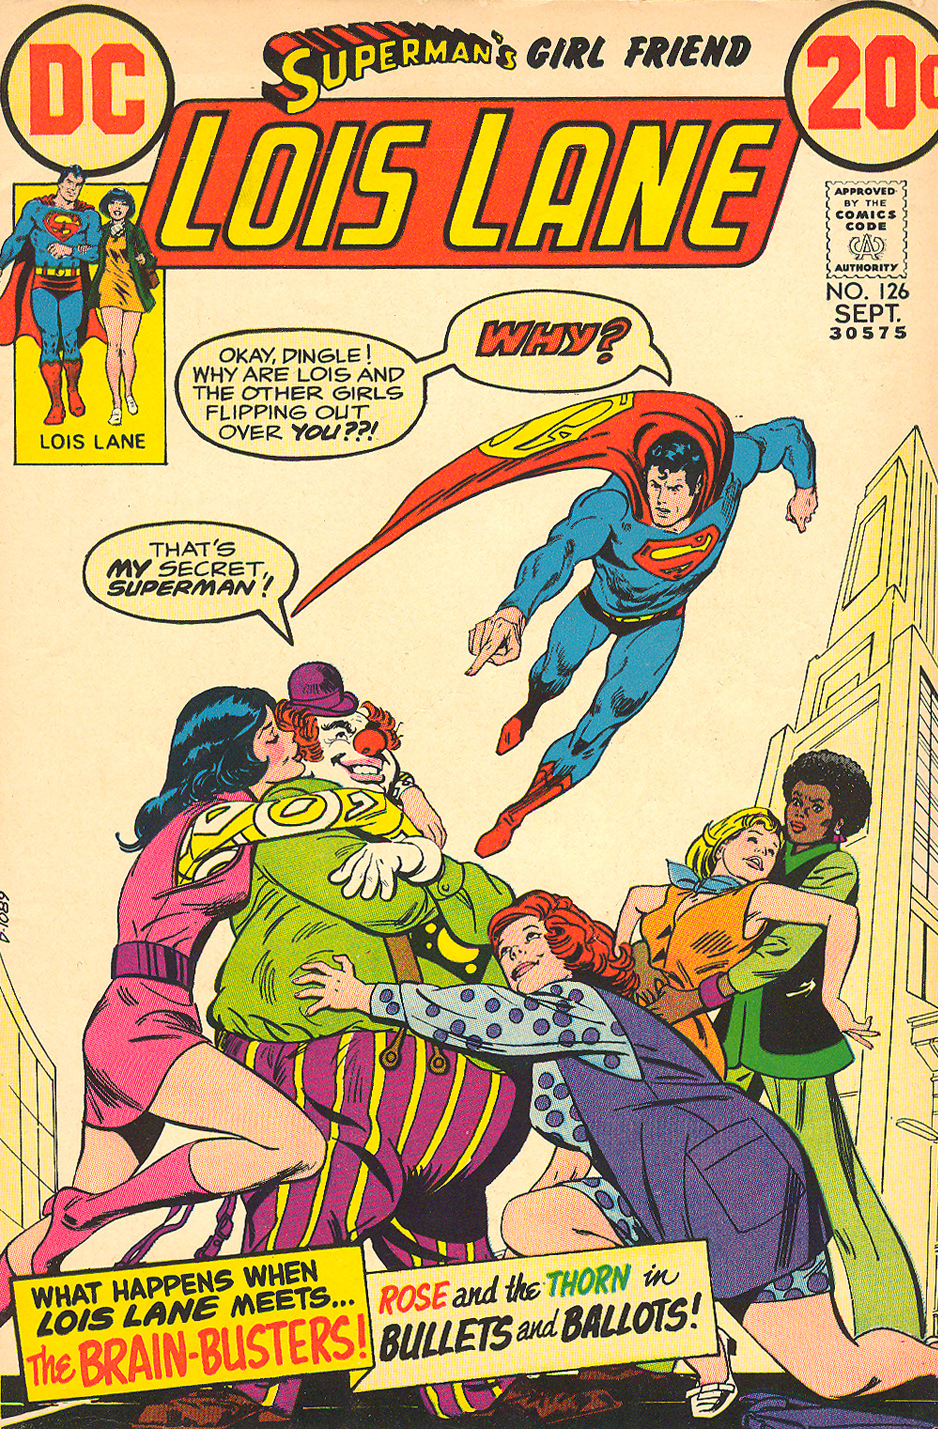 Superman's Girl Friend Lois Lane  #126 (September 1972)